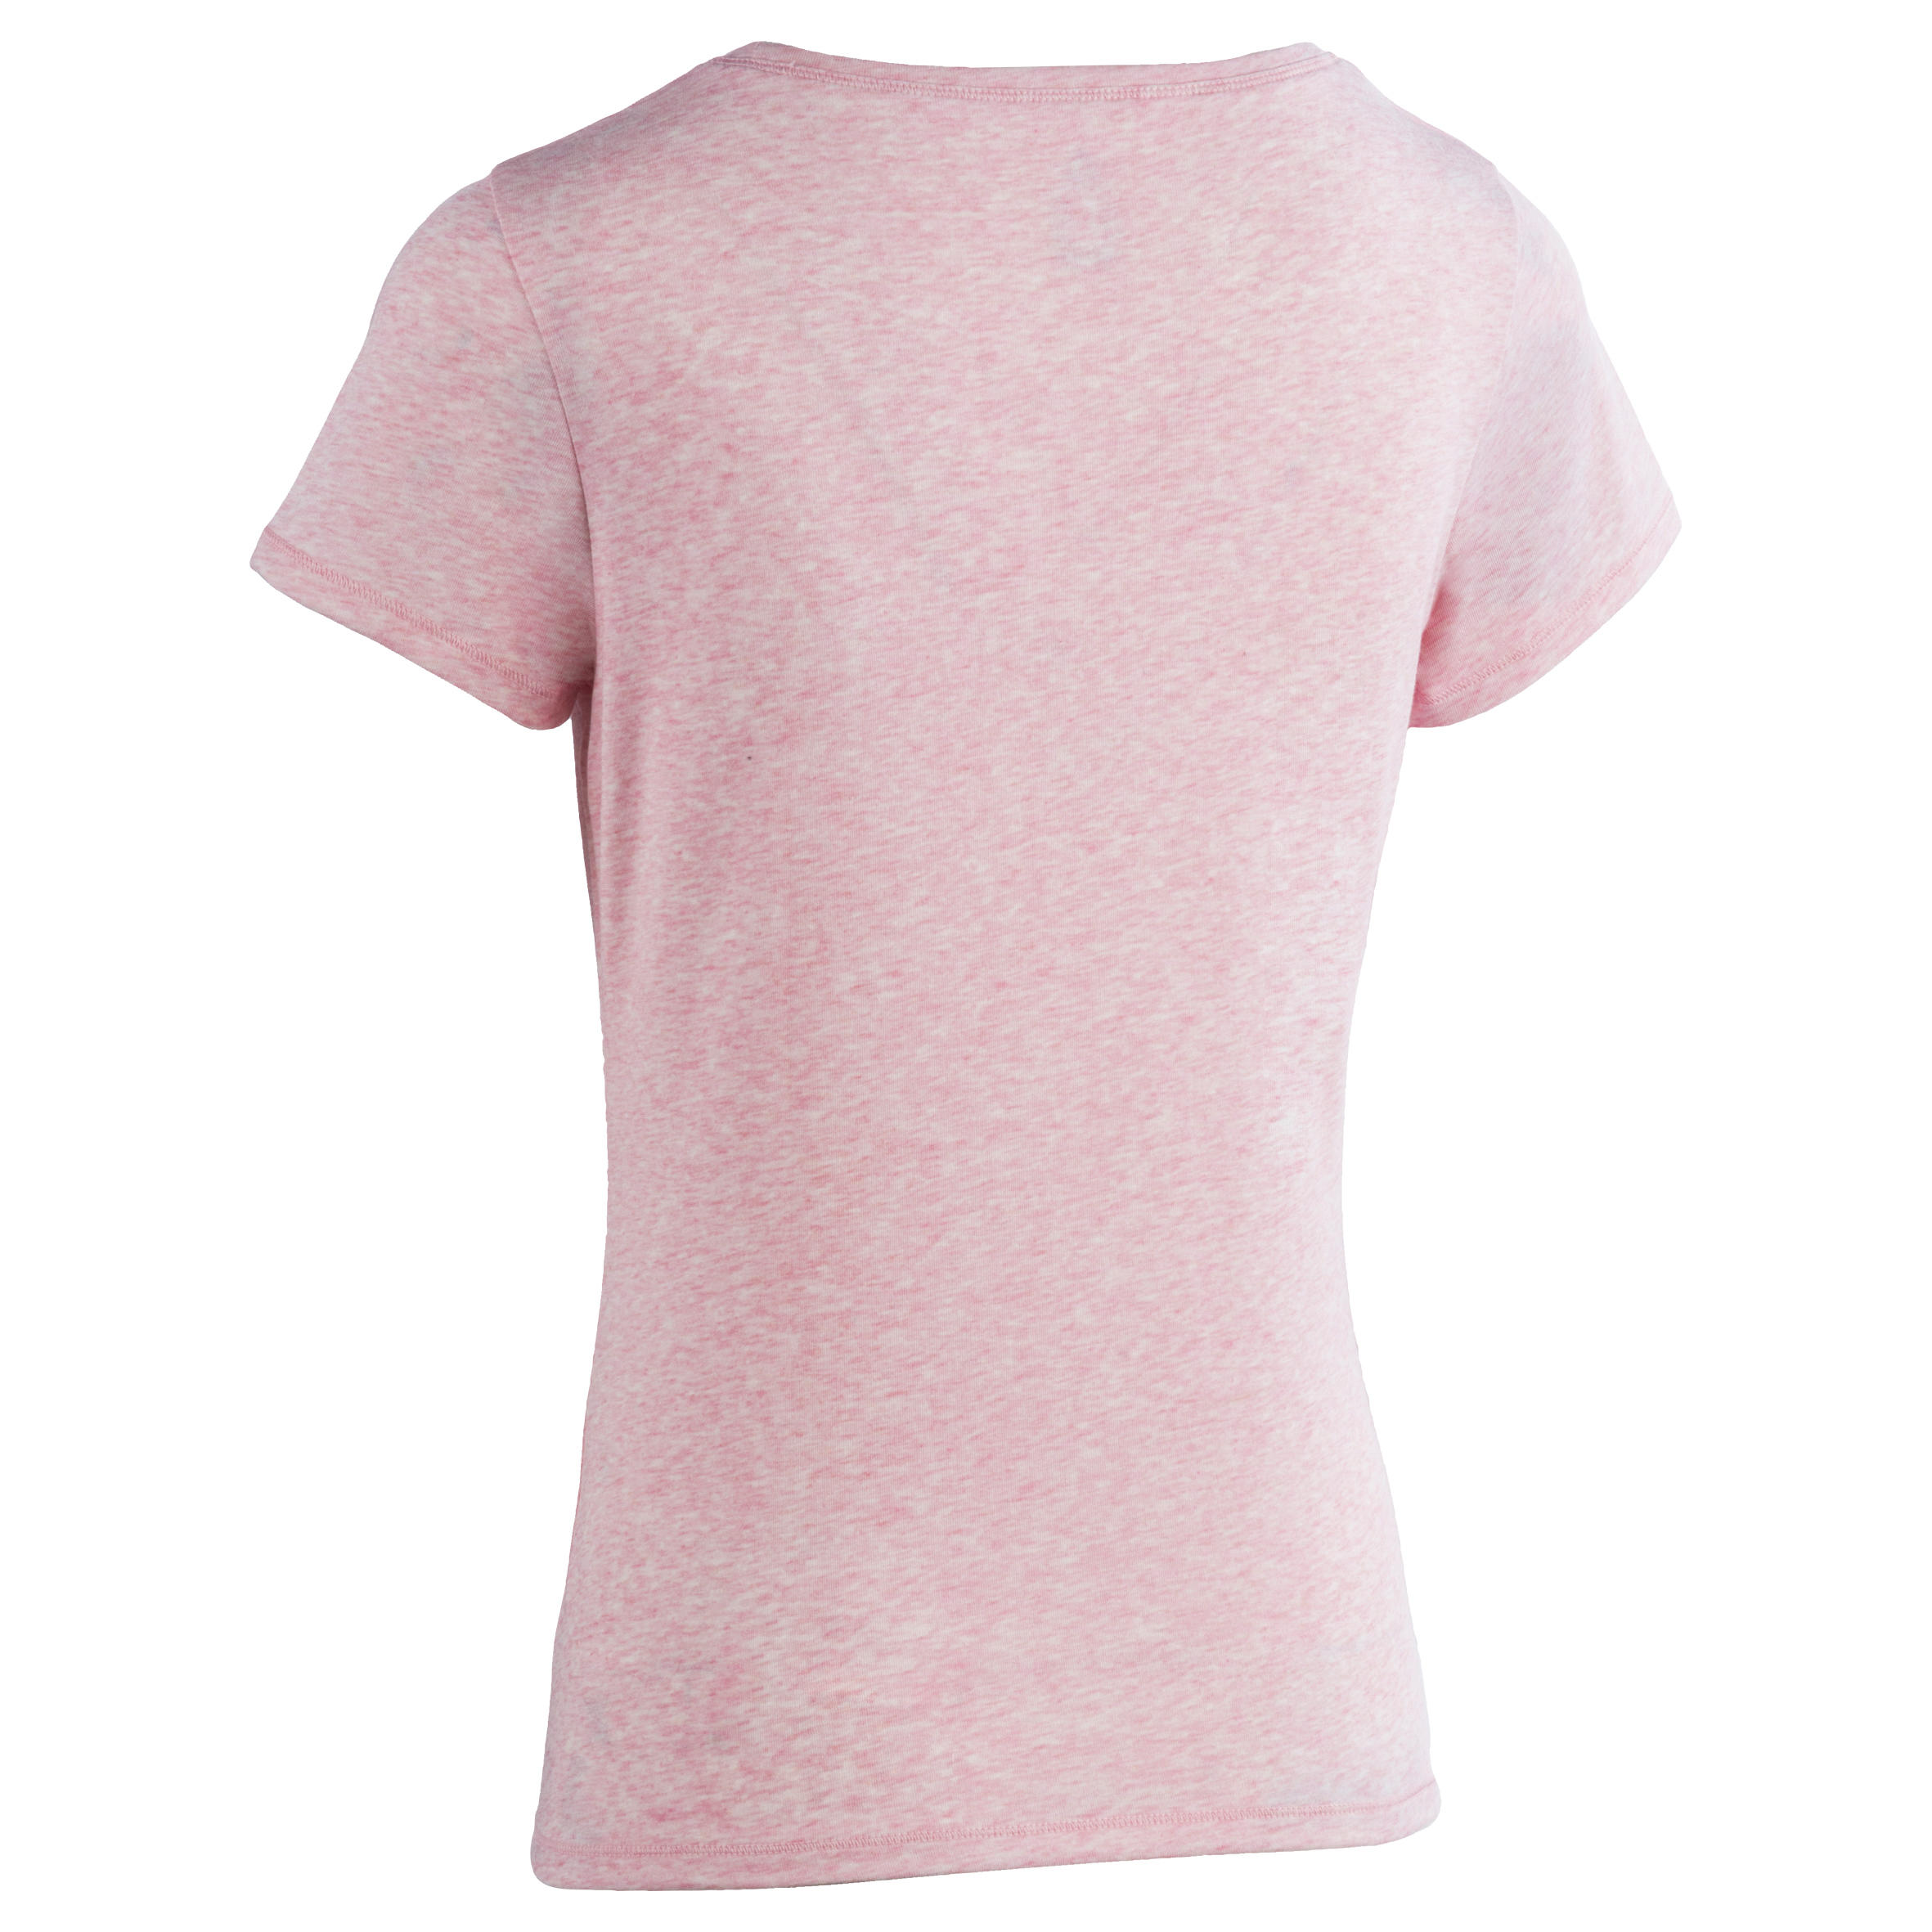 510 Women's Regular-Fit Short-Sleeved Gym & Pilates T-Shirt Light Heathered Pink